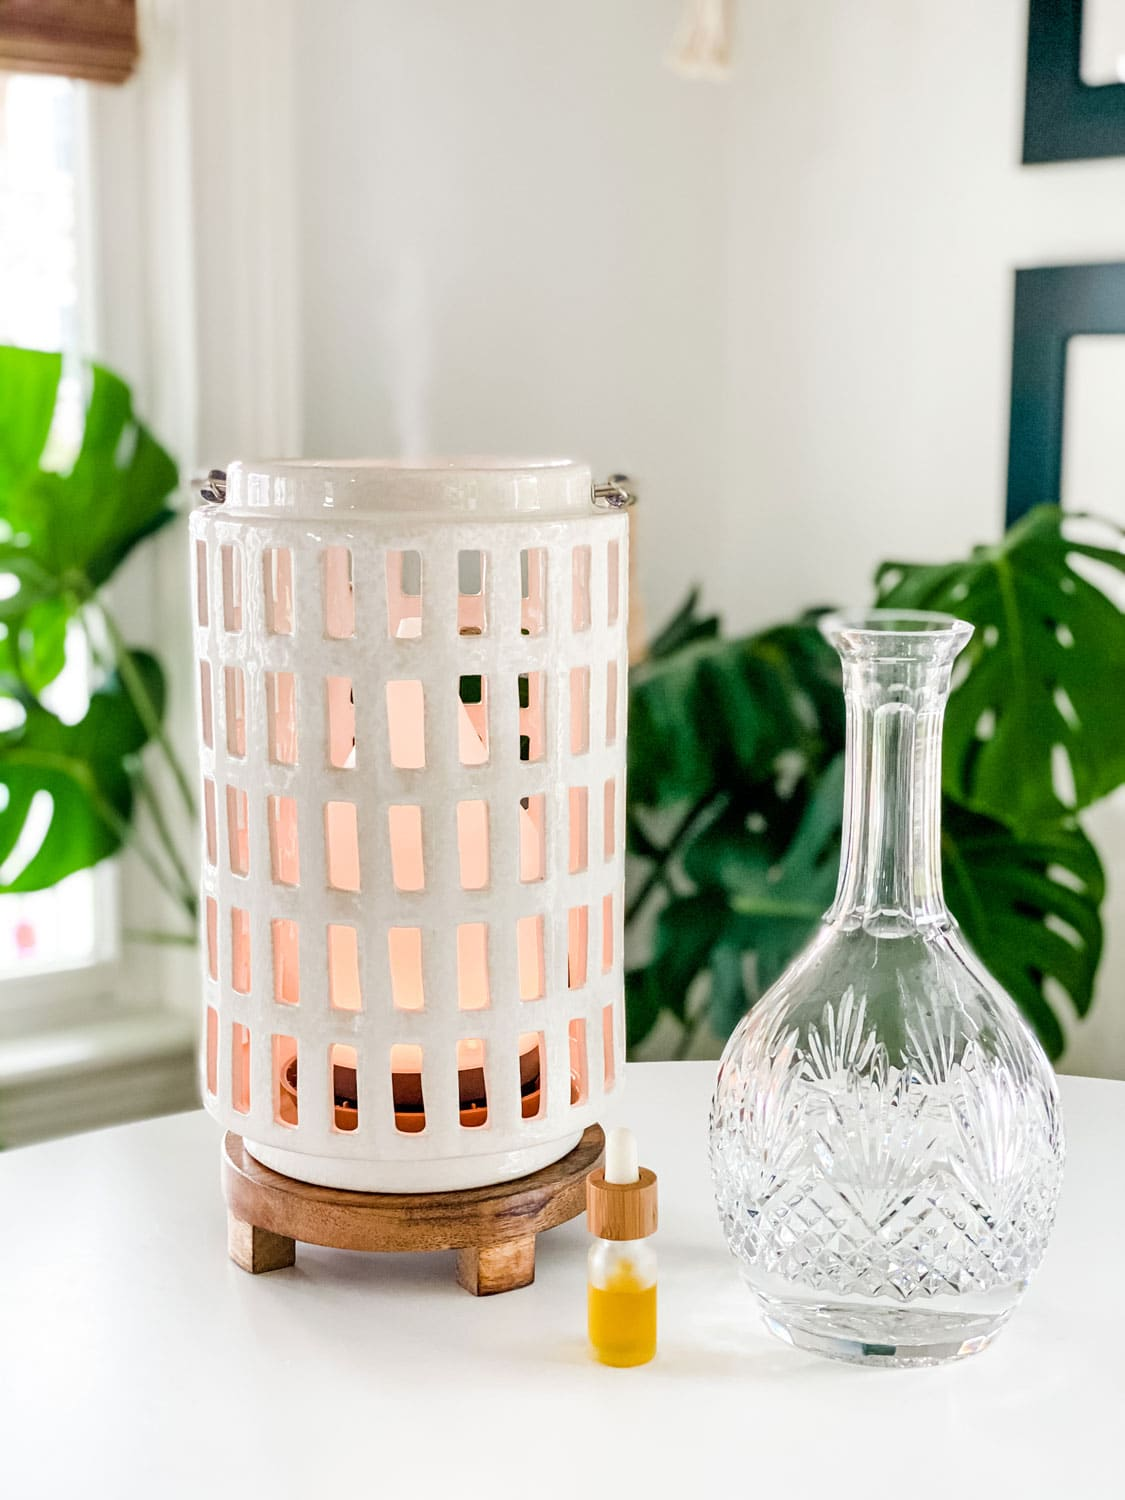 ceramic lantern on table with crystal glass bottle and plants